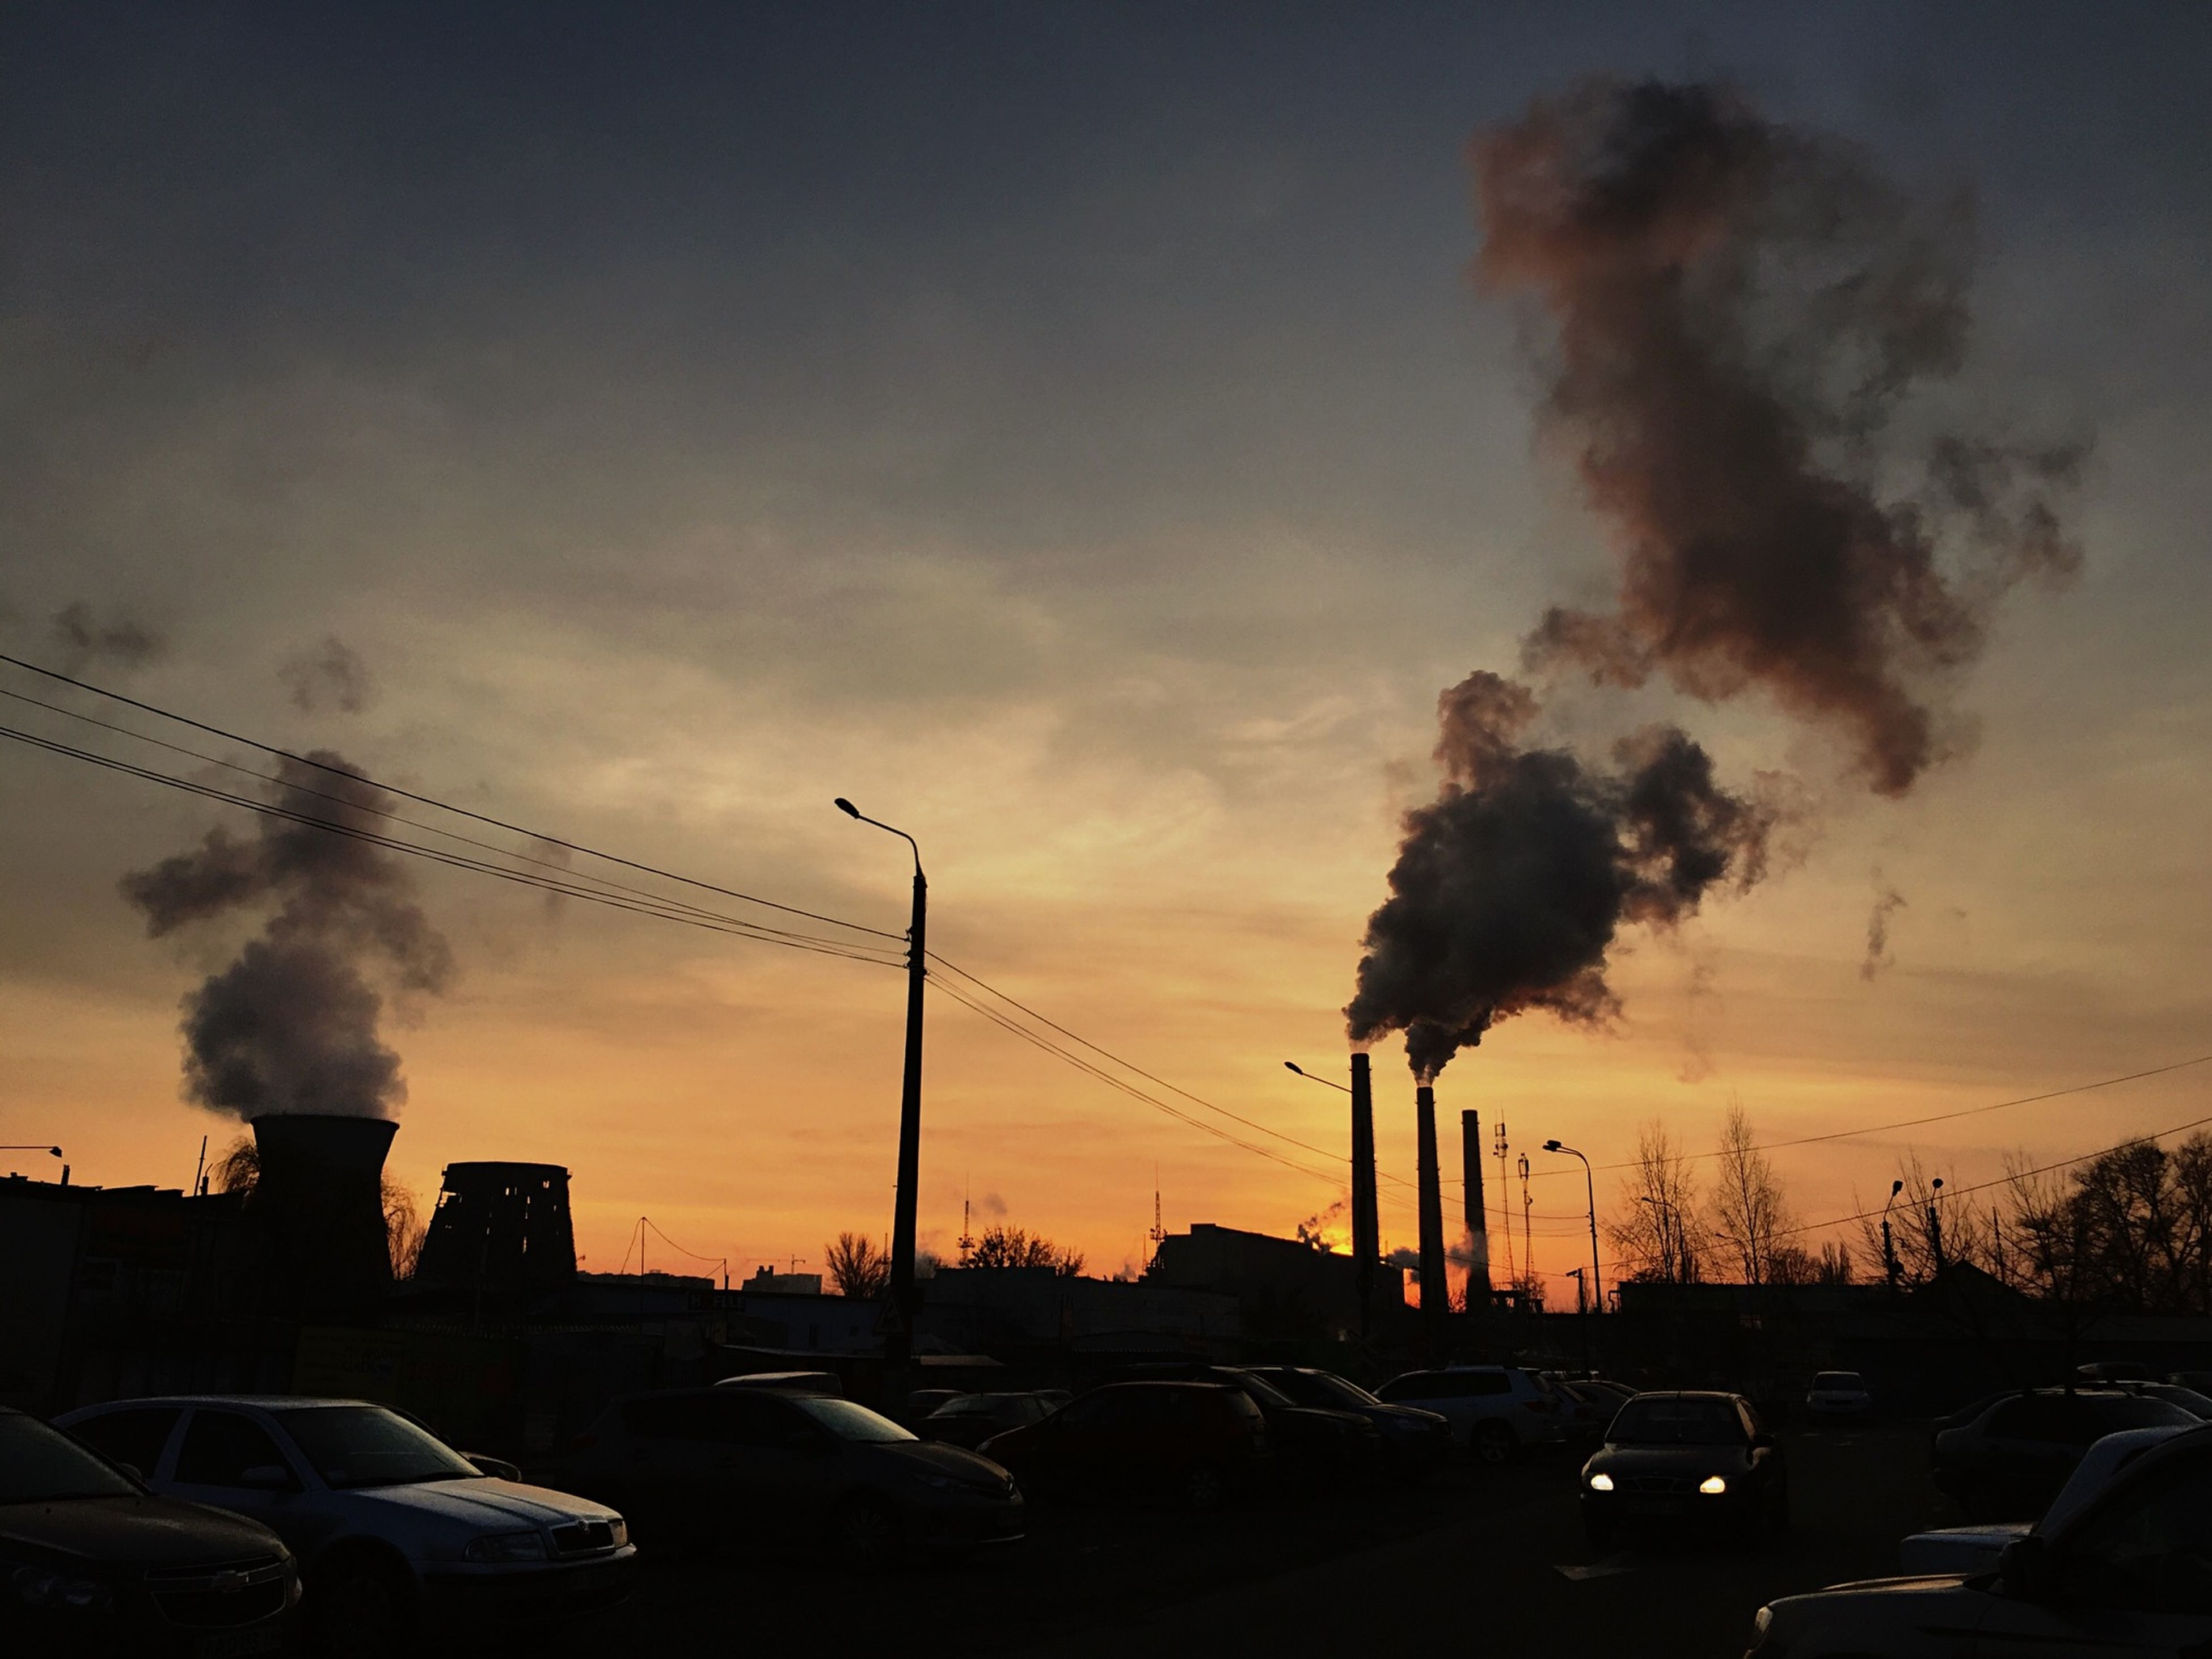 built structure, car, pollution, sky, sunset, architecture, cloud - sky, building exterior, smoke - physical structure, smoke stack, emitting, land vehicle, transportation, no people, city, silhouette, factory, industry, outdoors, fumes, chimney, tall, road, tree, electricity pylon, nature, day